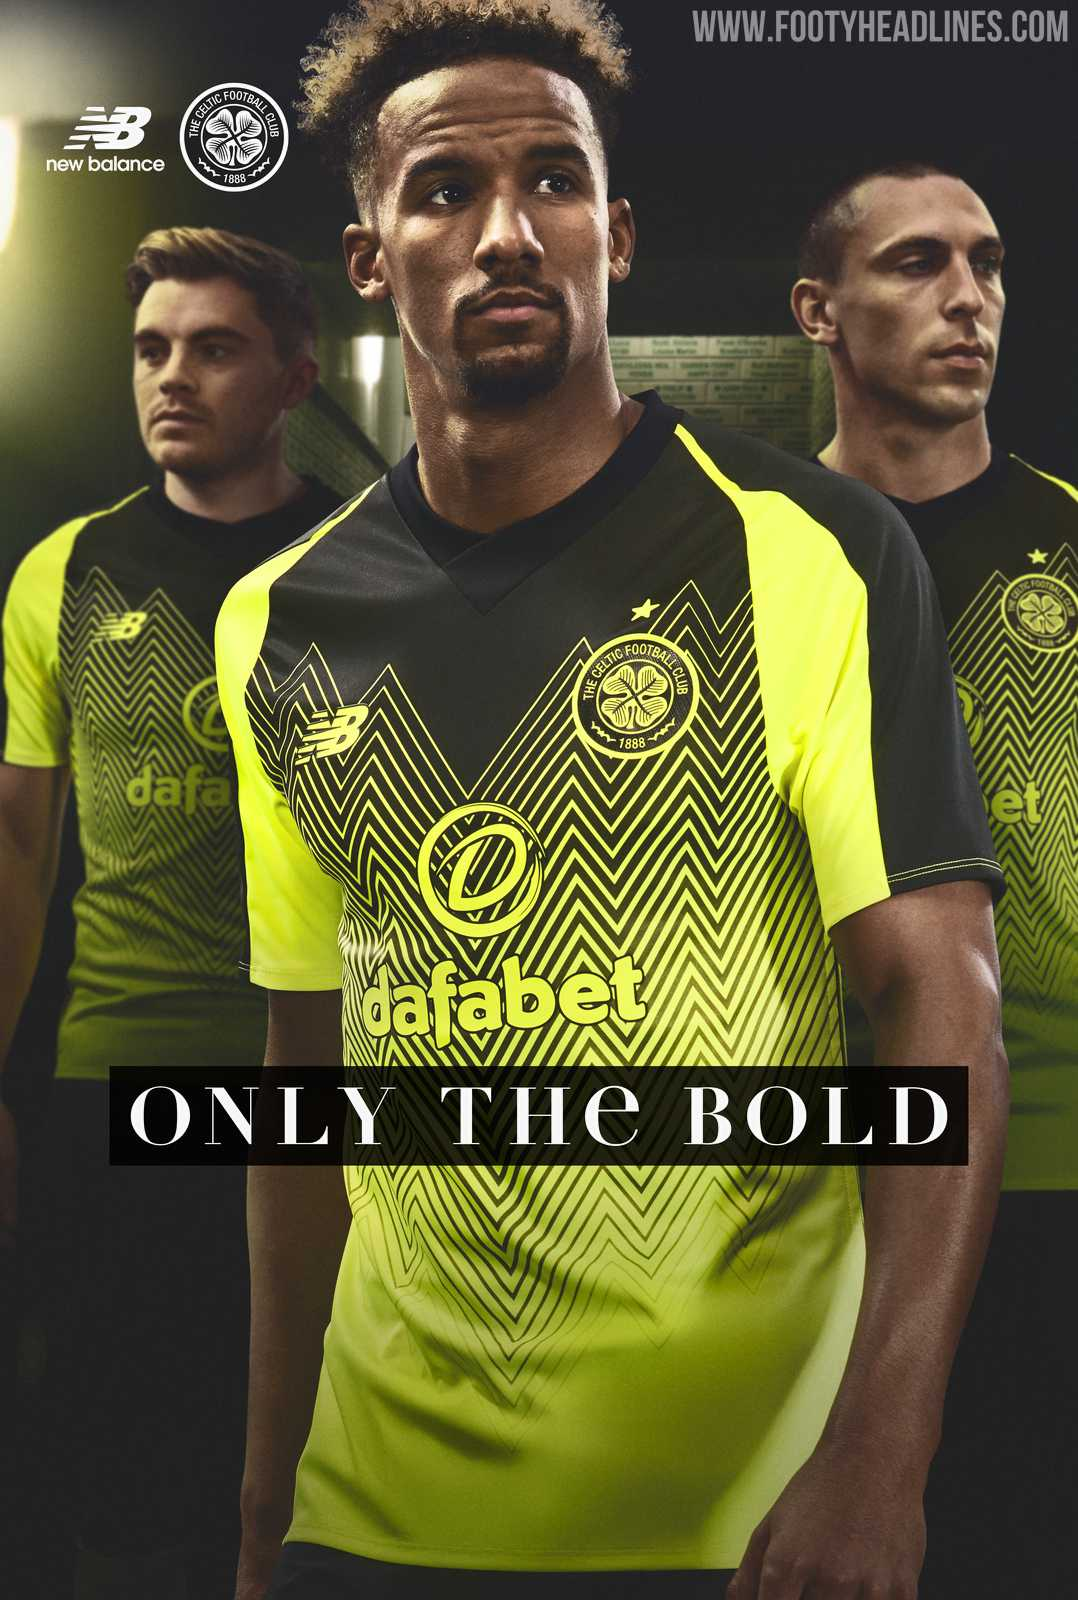 6c3c8b2b7 Celtic 18-19 Third Kit Revealed - Footy Headlines